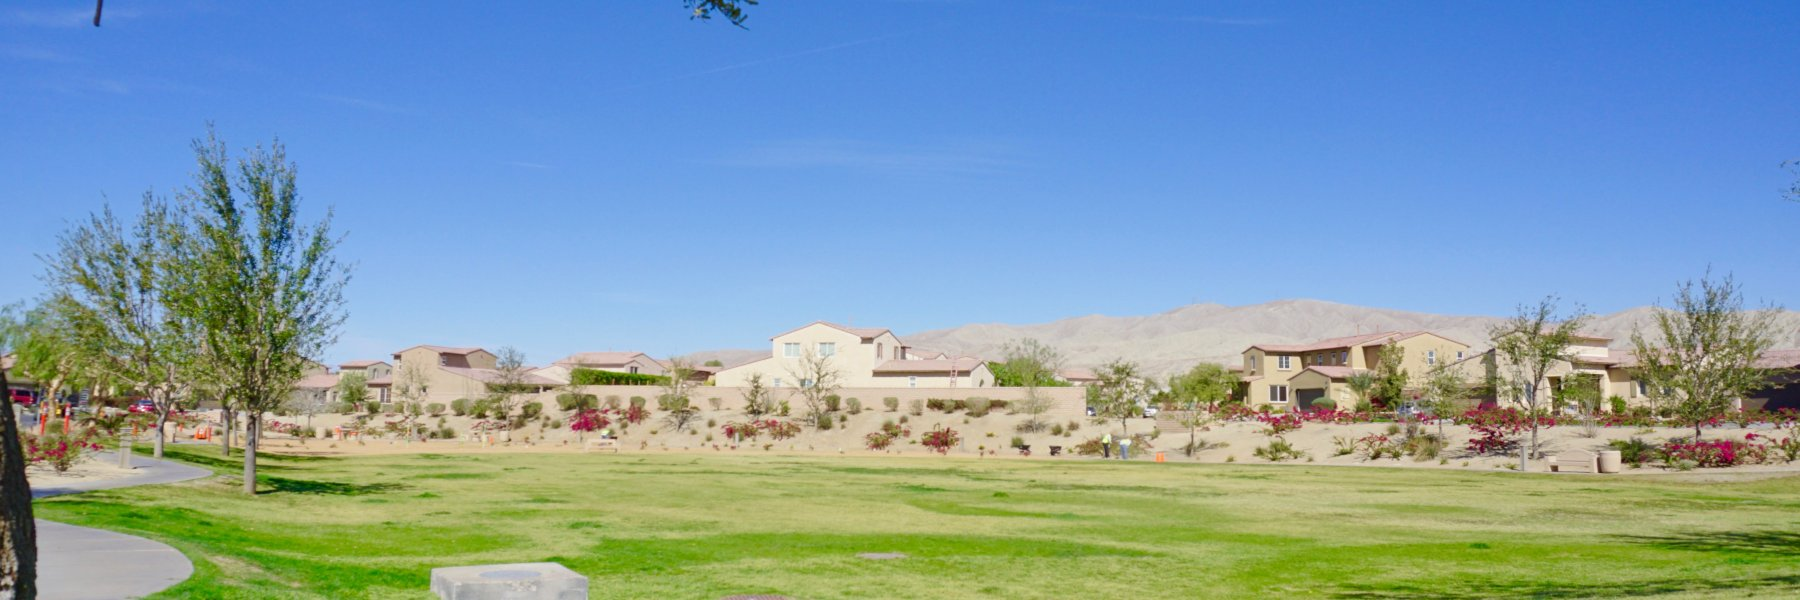 Sonora Wells is a community of homes in Indio California